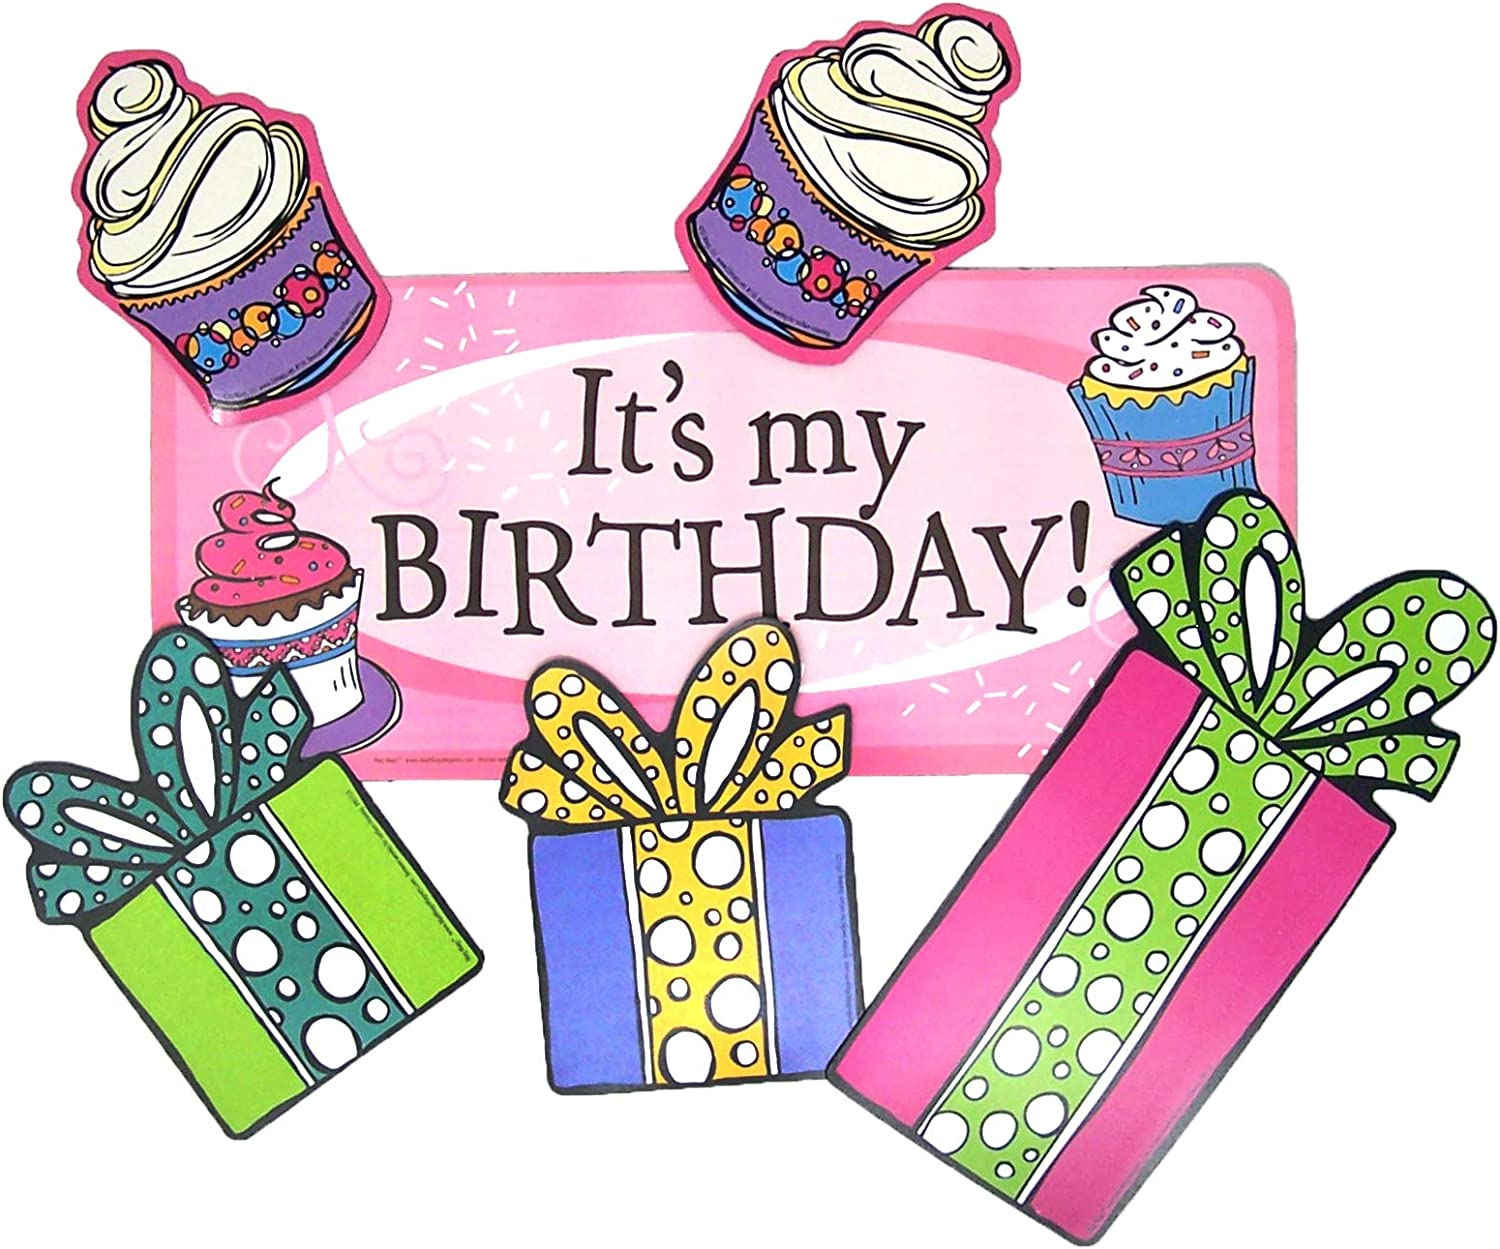 Car Magnet It's My Birthday Banner with Cupcakes and Presents Magnetic Decal for Locker or Fridge